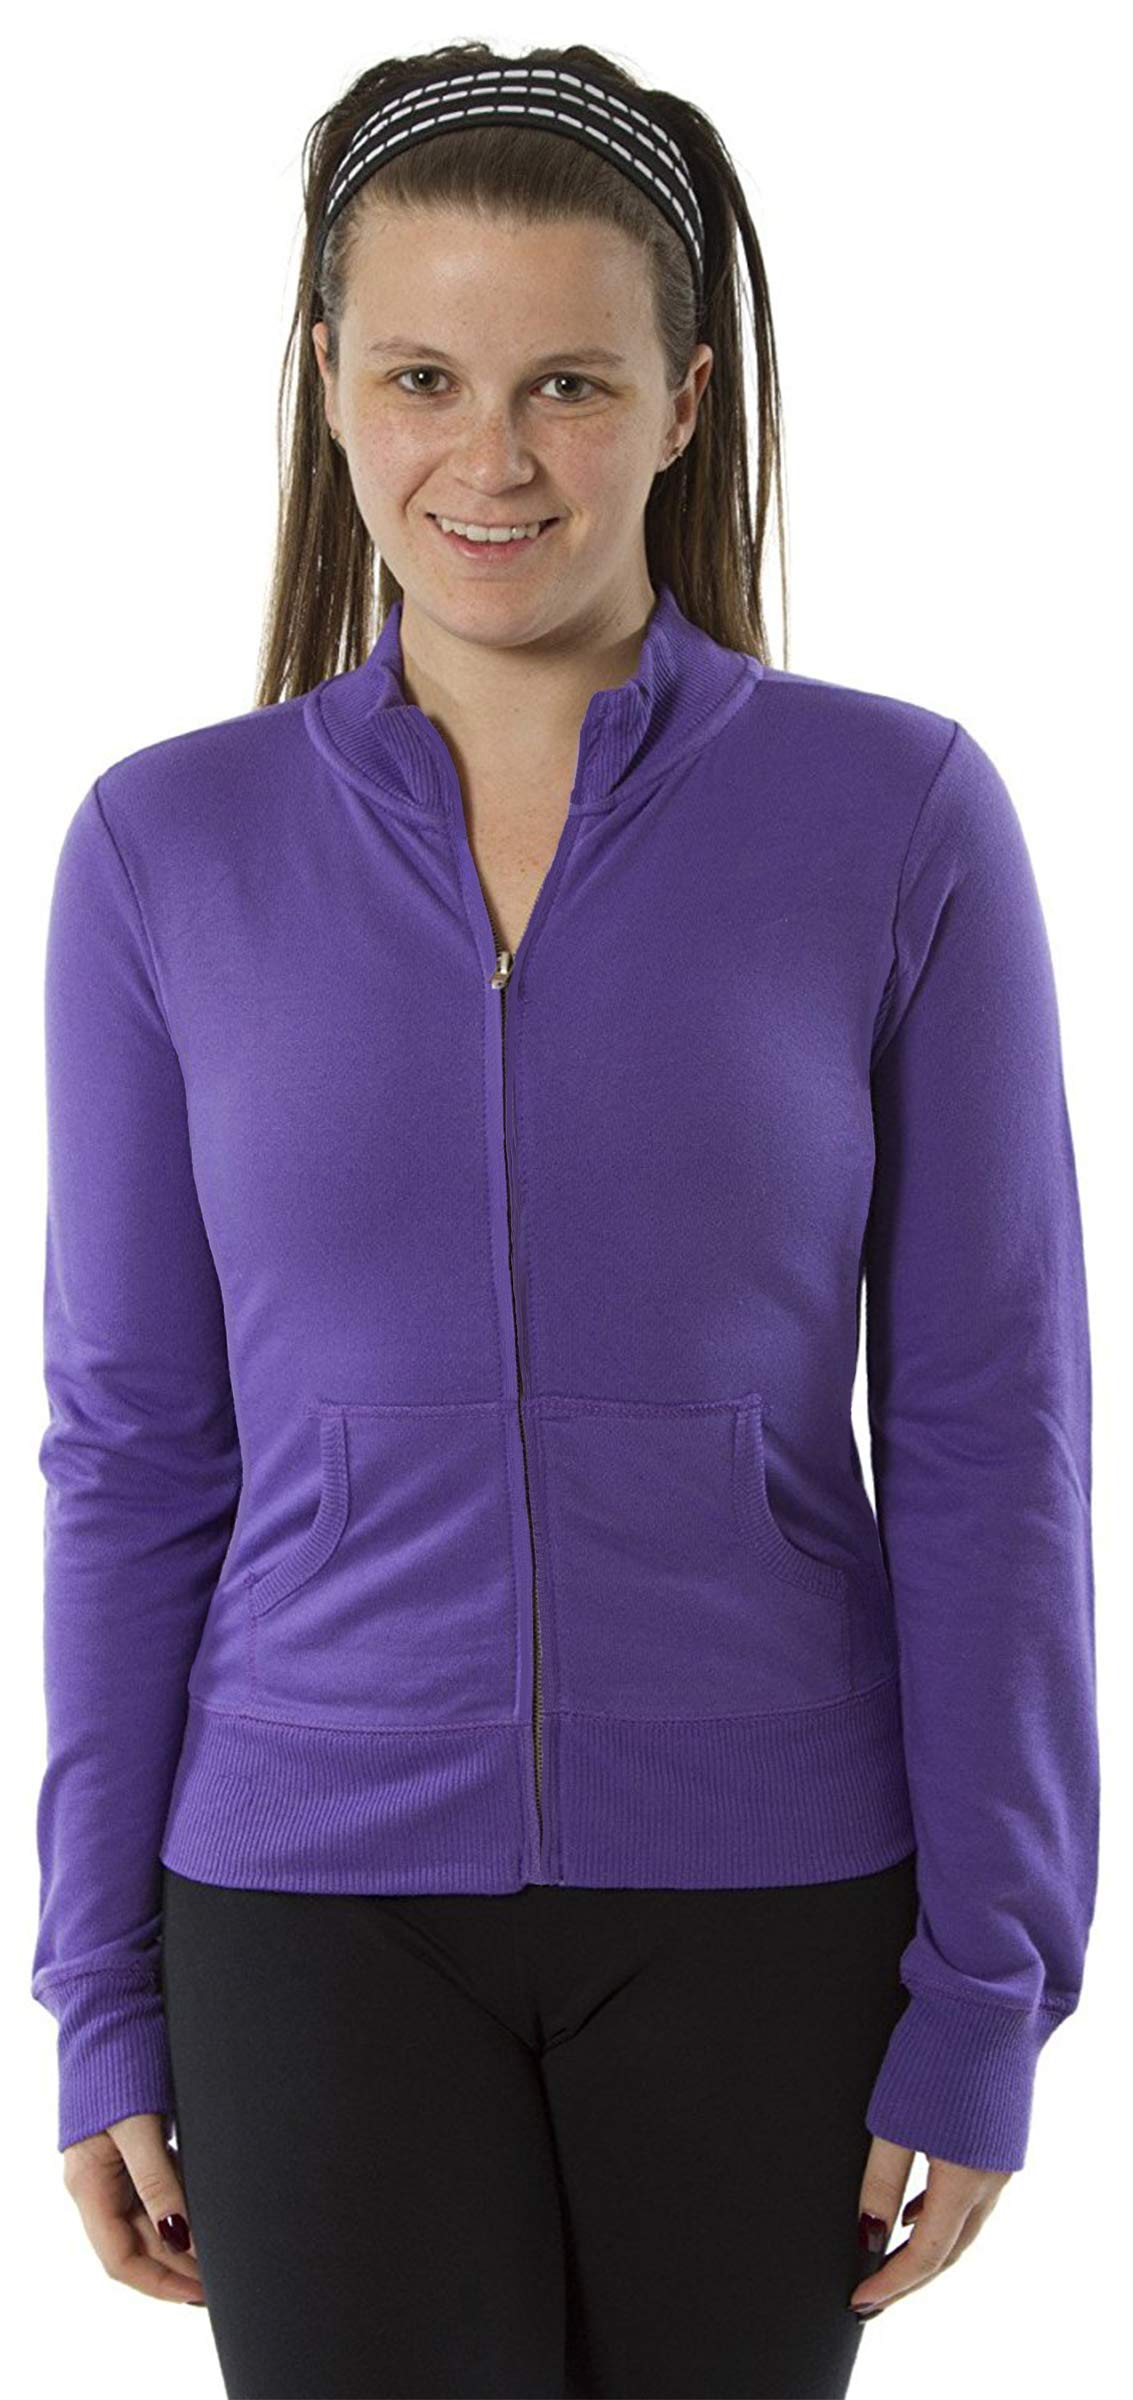 Womens Long Sleeve Mock Neck Jacket Zip up With Piping Jacket (Small, Purple)